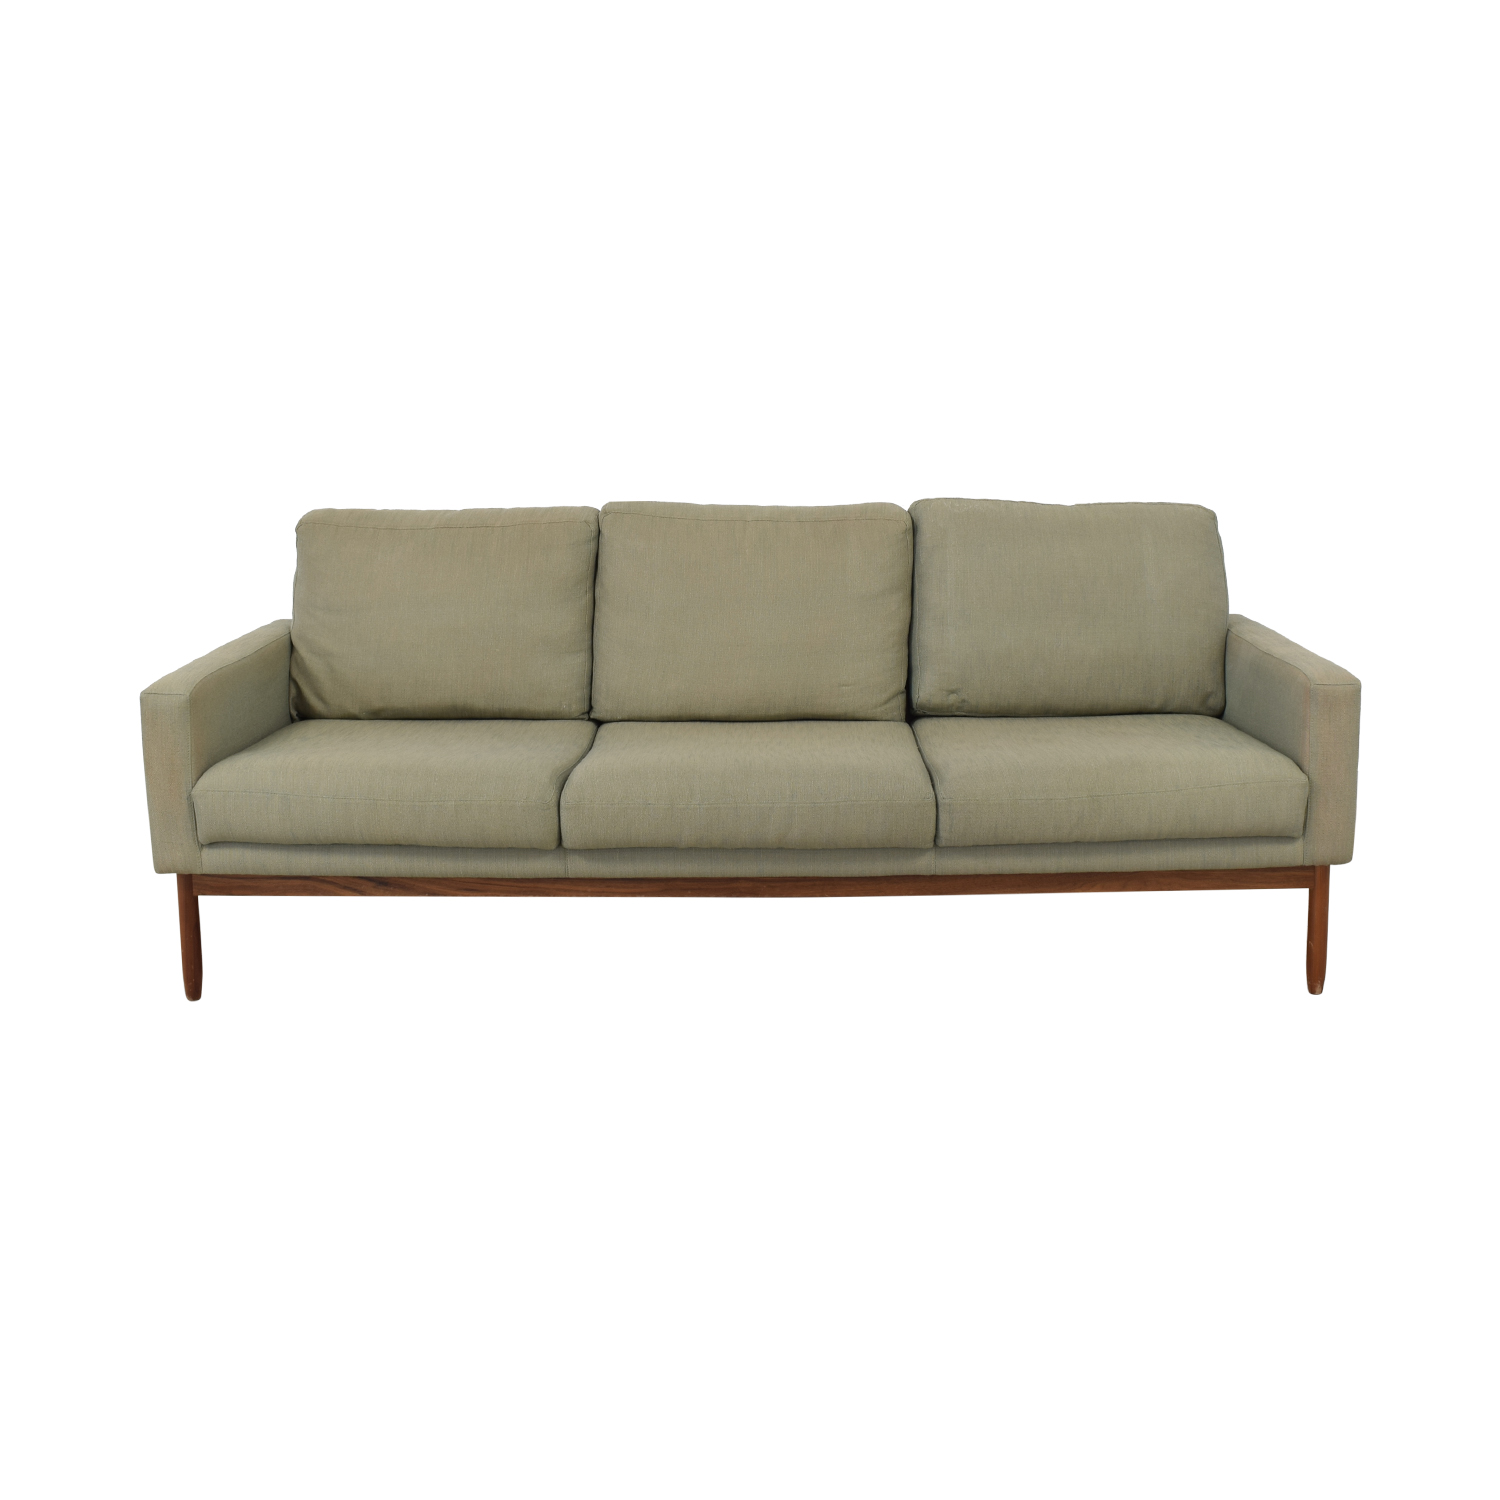 buy Design Within Reach Raleigh Grey Three-Cushion Sofa Design Within Reach Sofas